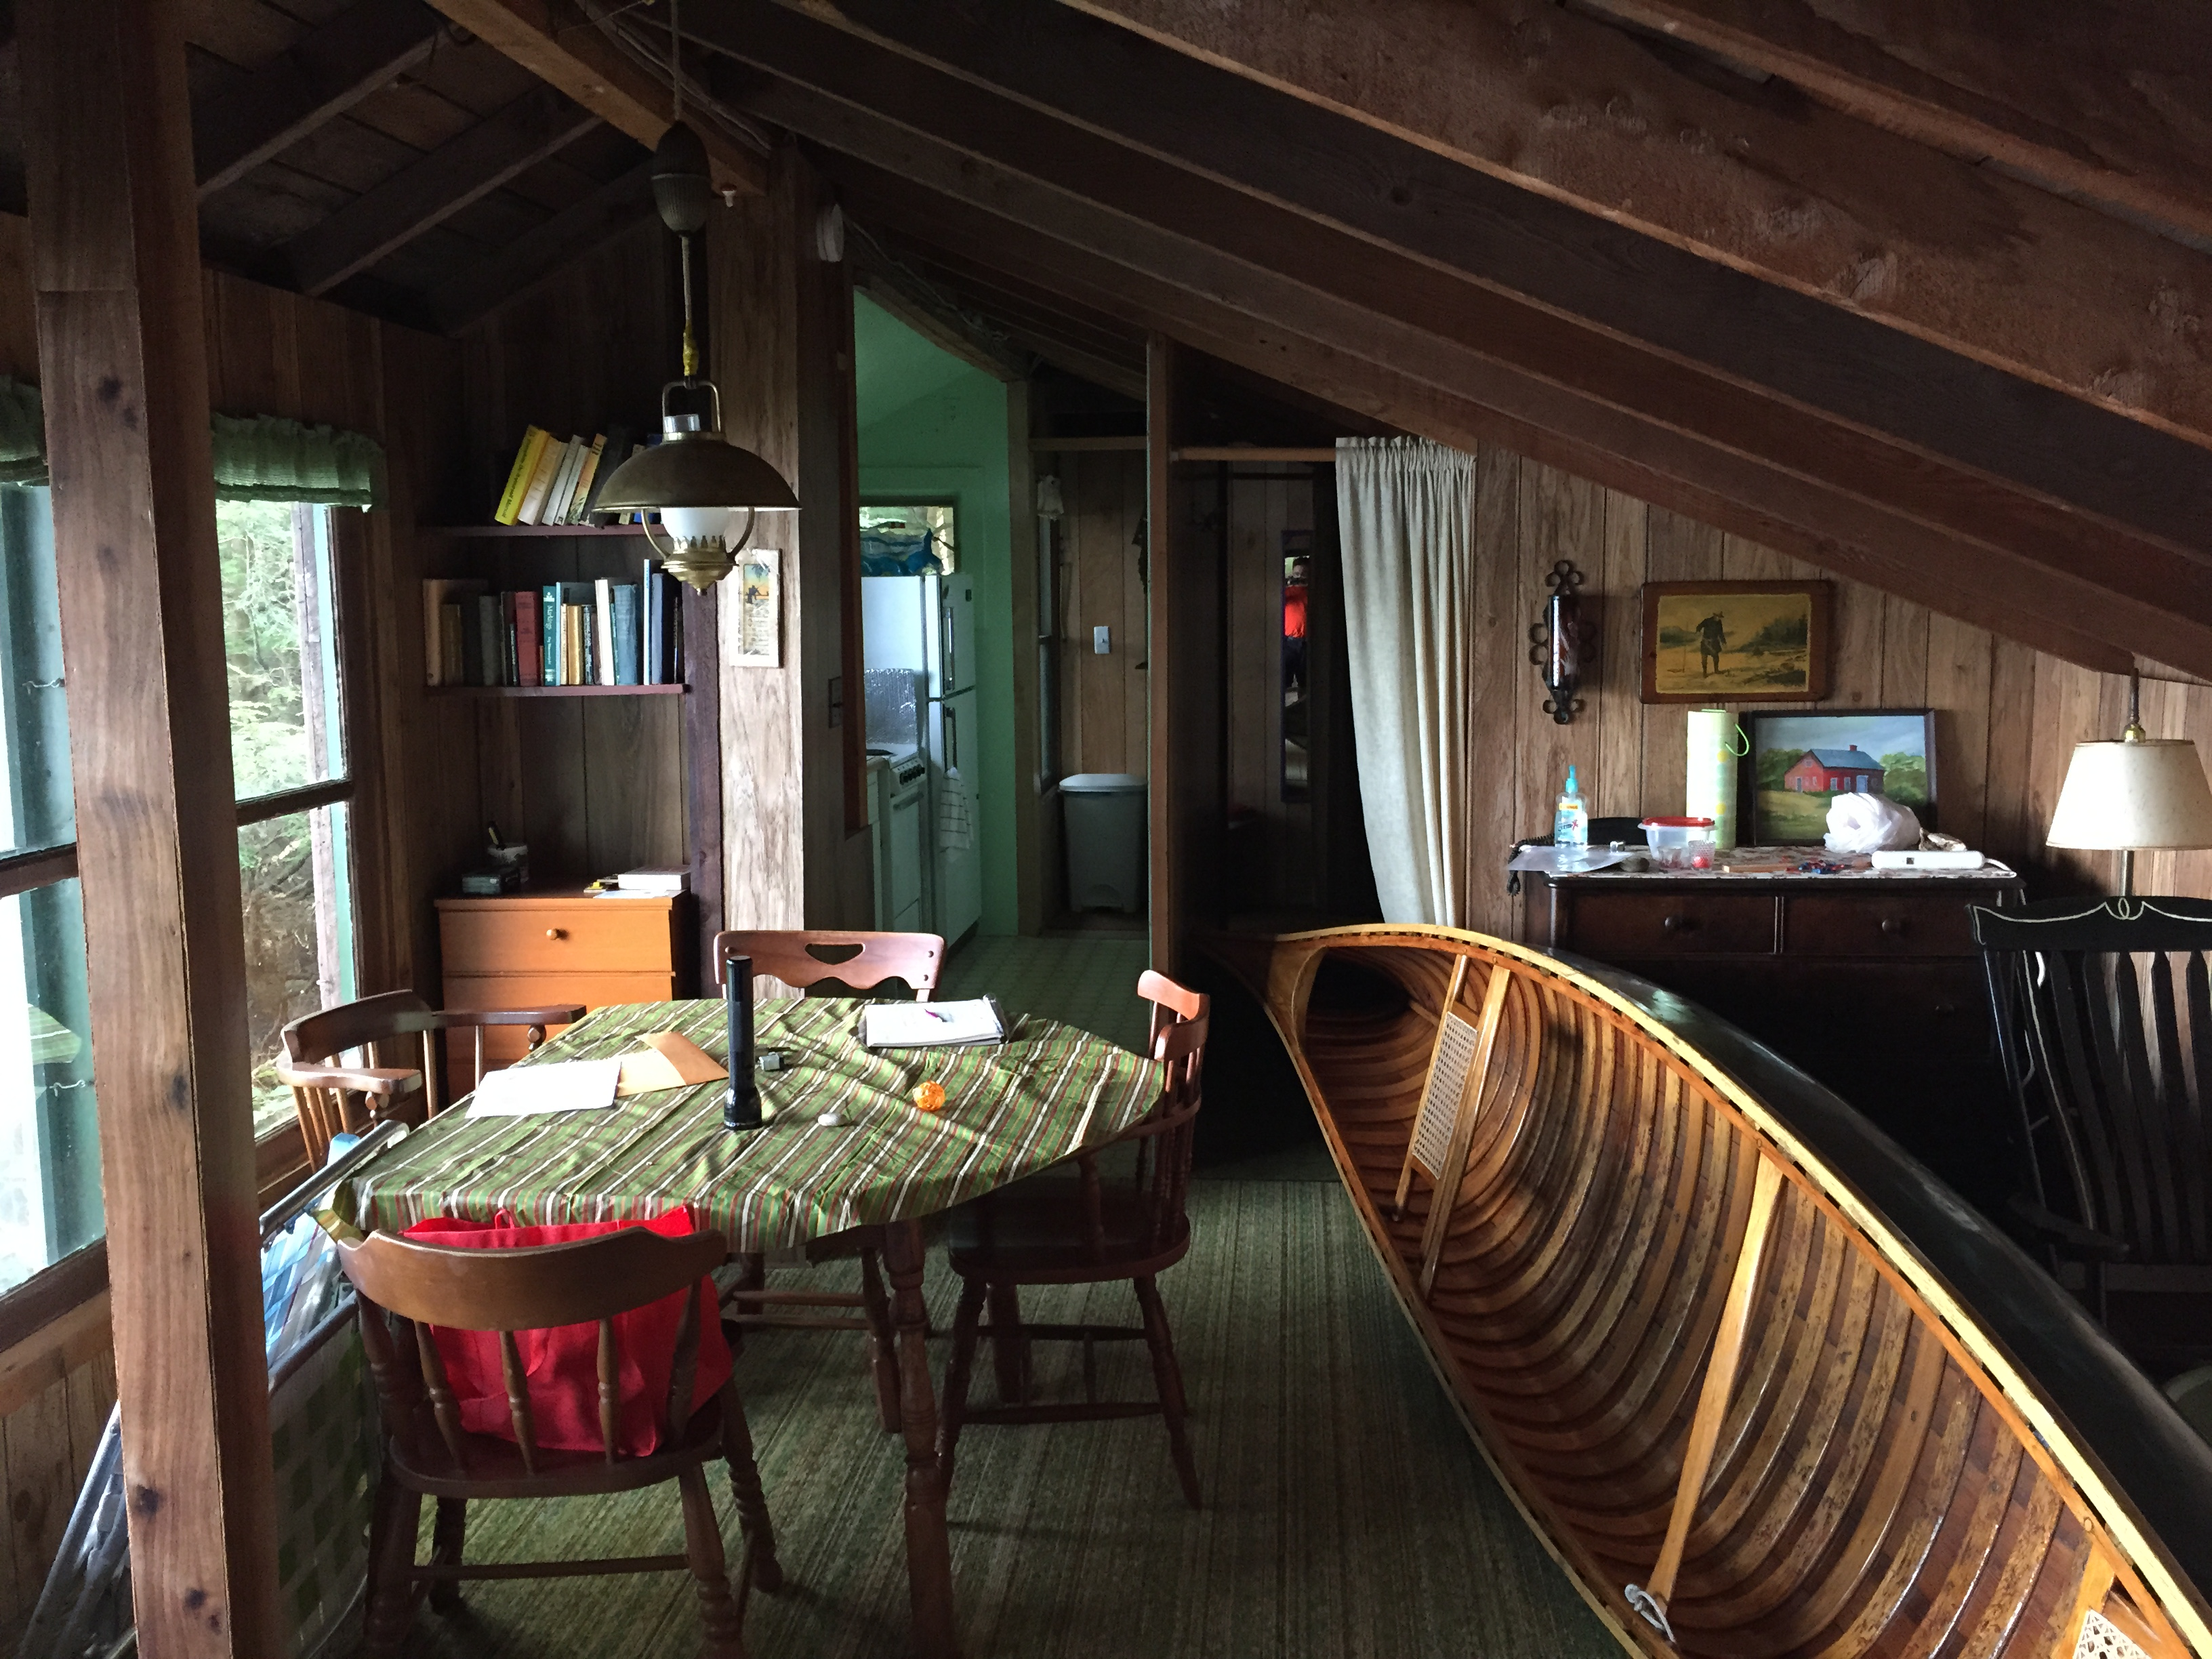 file2015 08 20 16 20 51 living room and dining room in